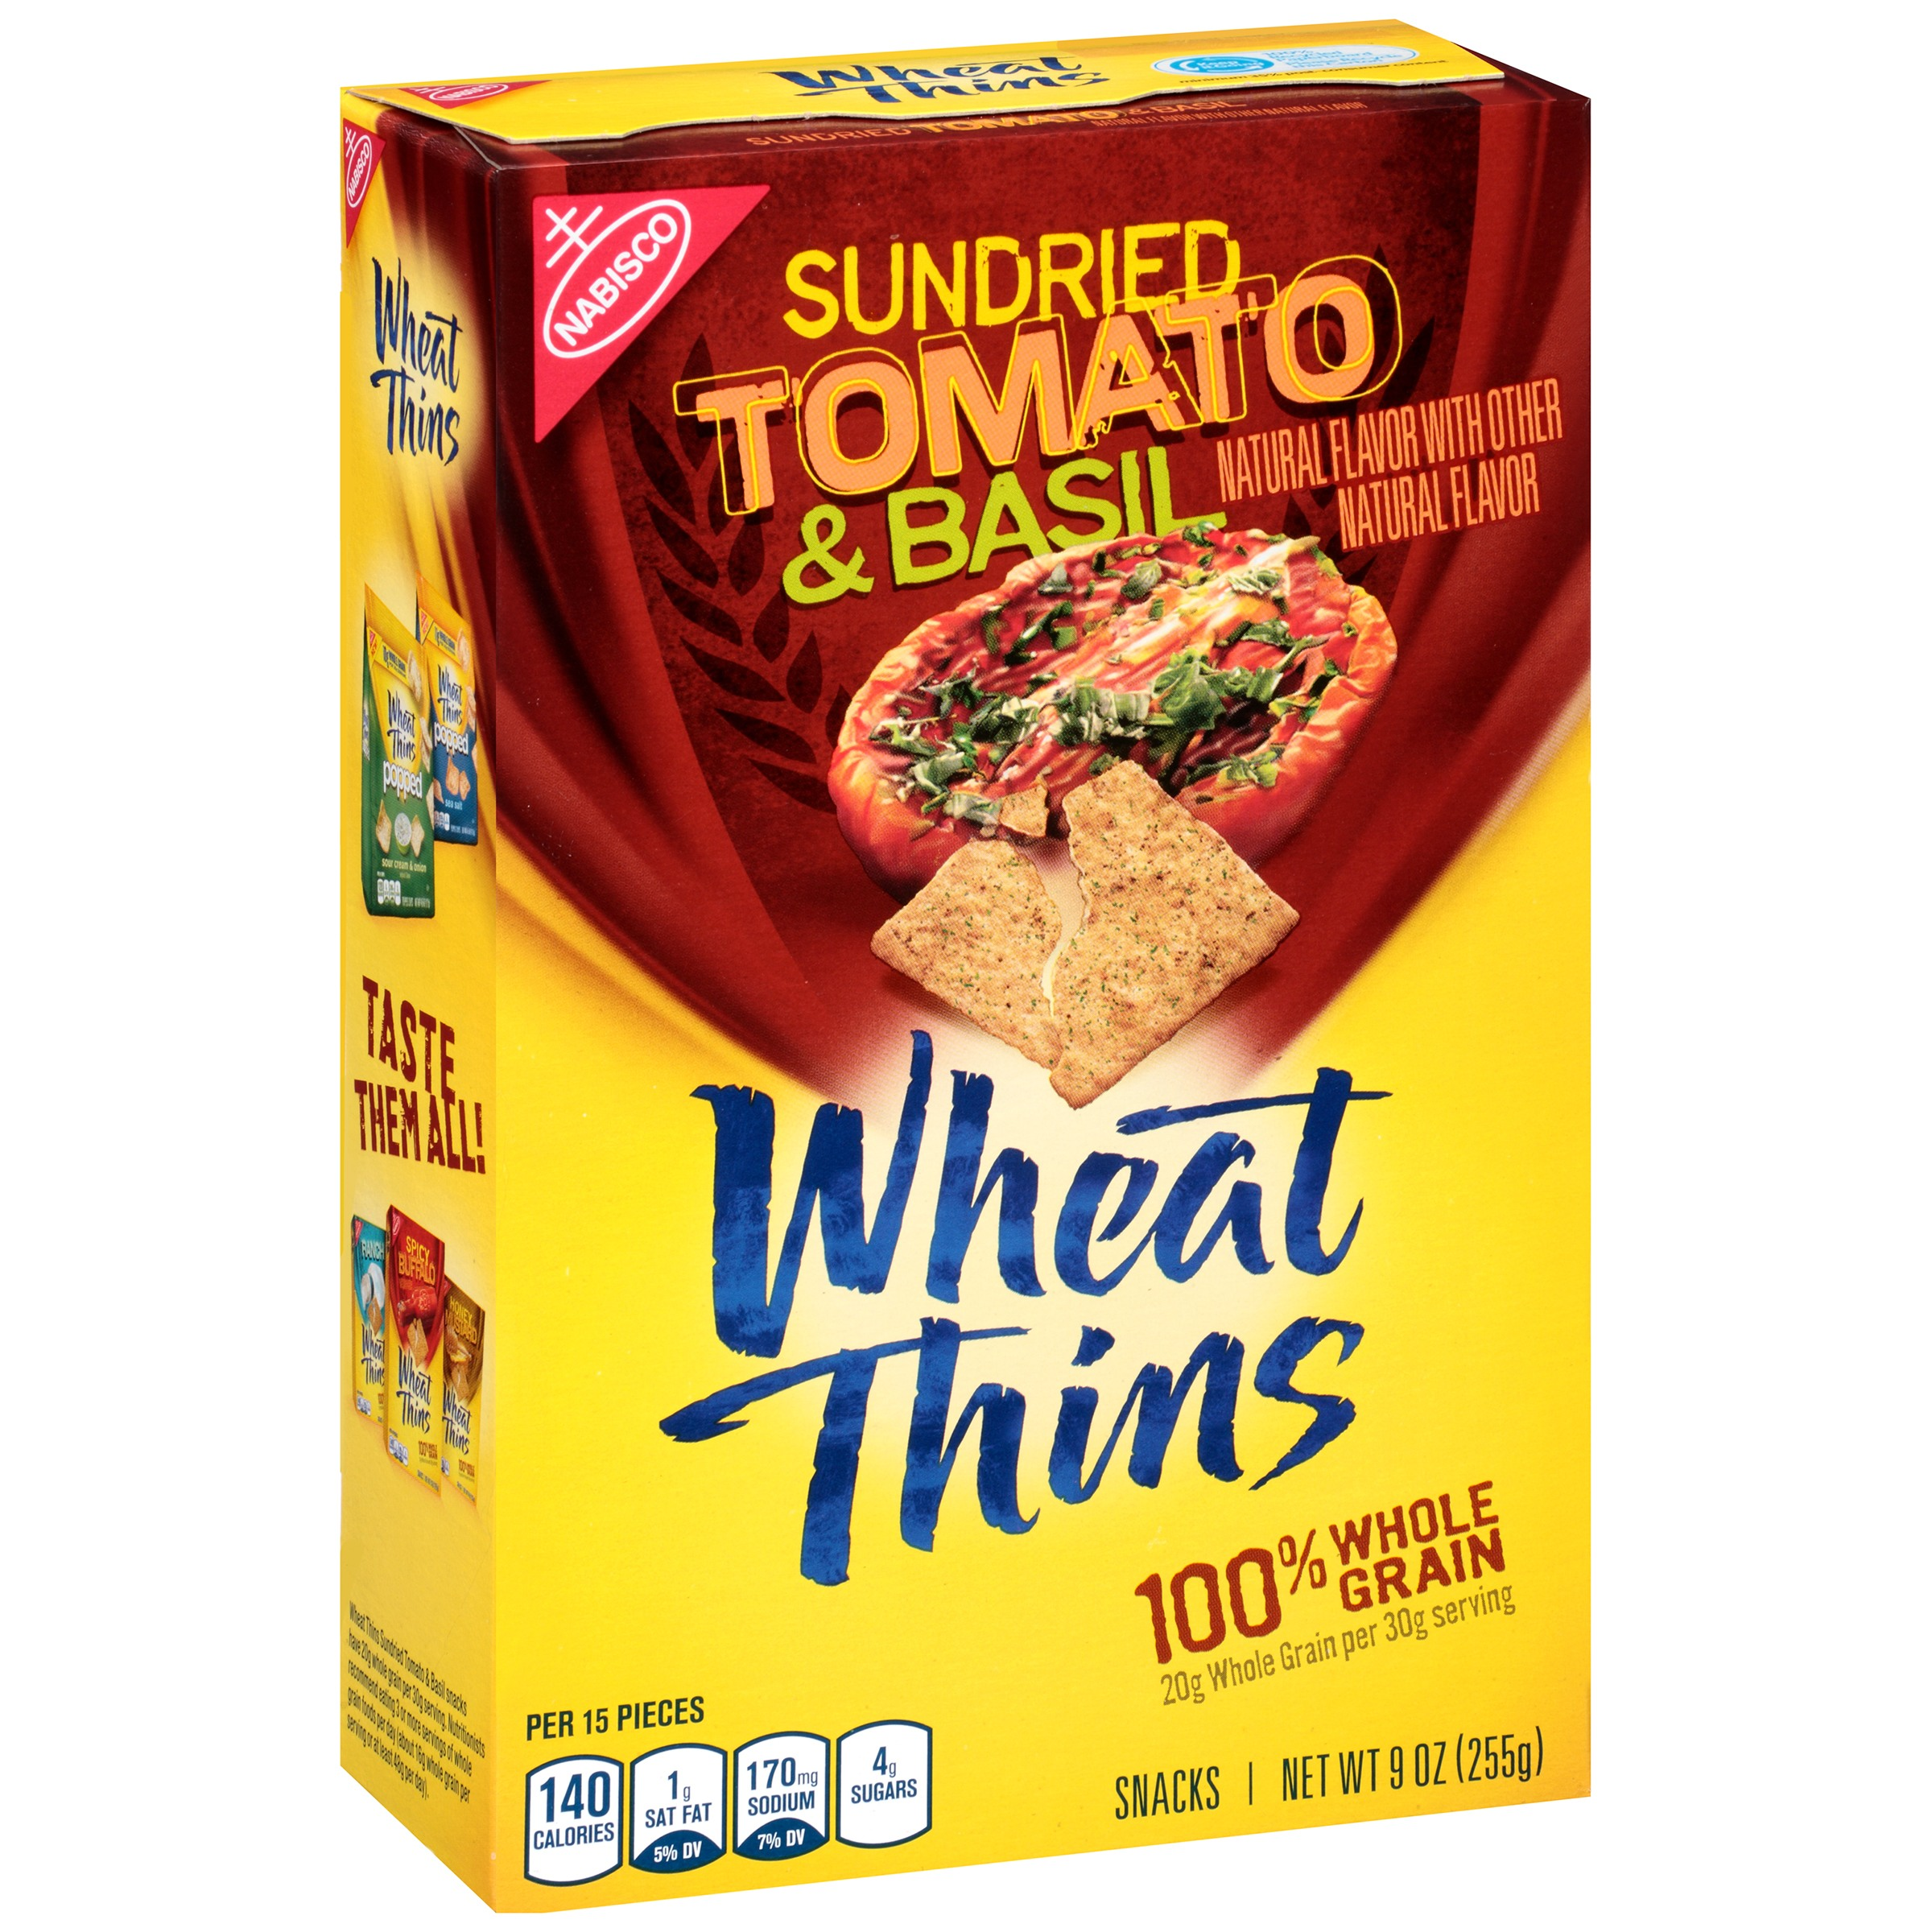 (2 Pack) Nabisco Wheat Thins Sundried Tomato & Basil Snacks 9 oz. Box